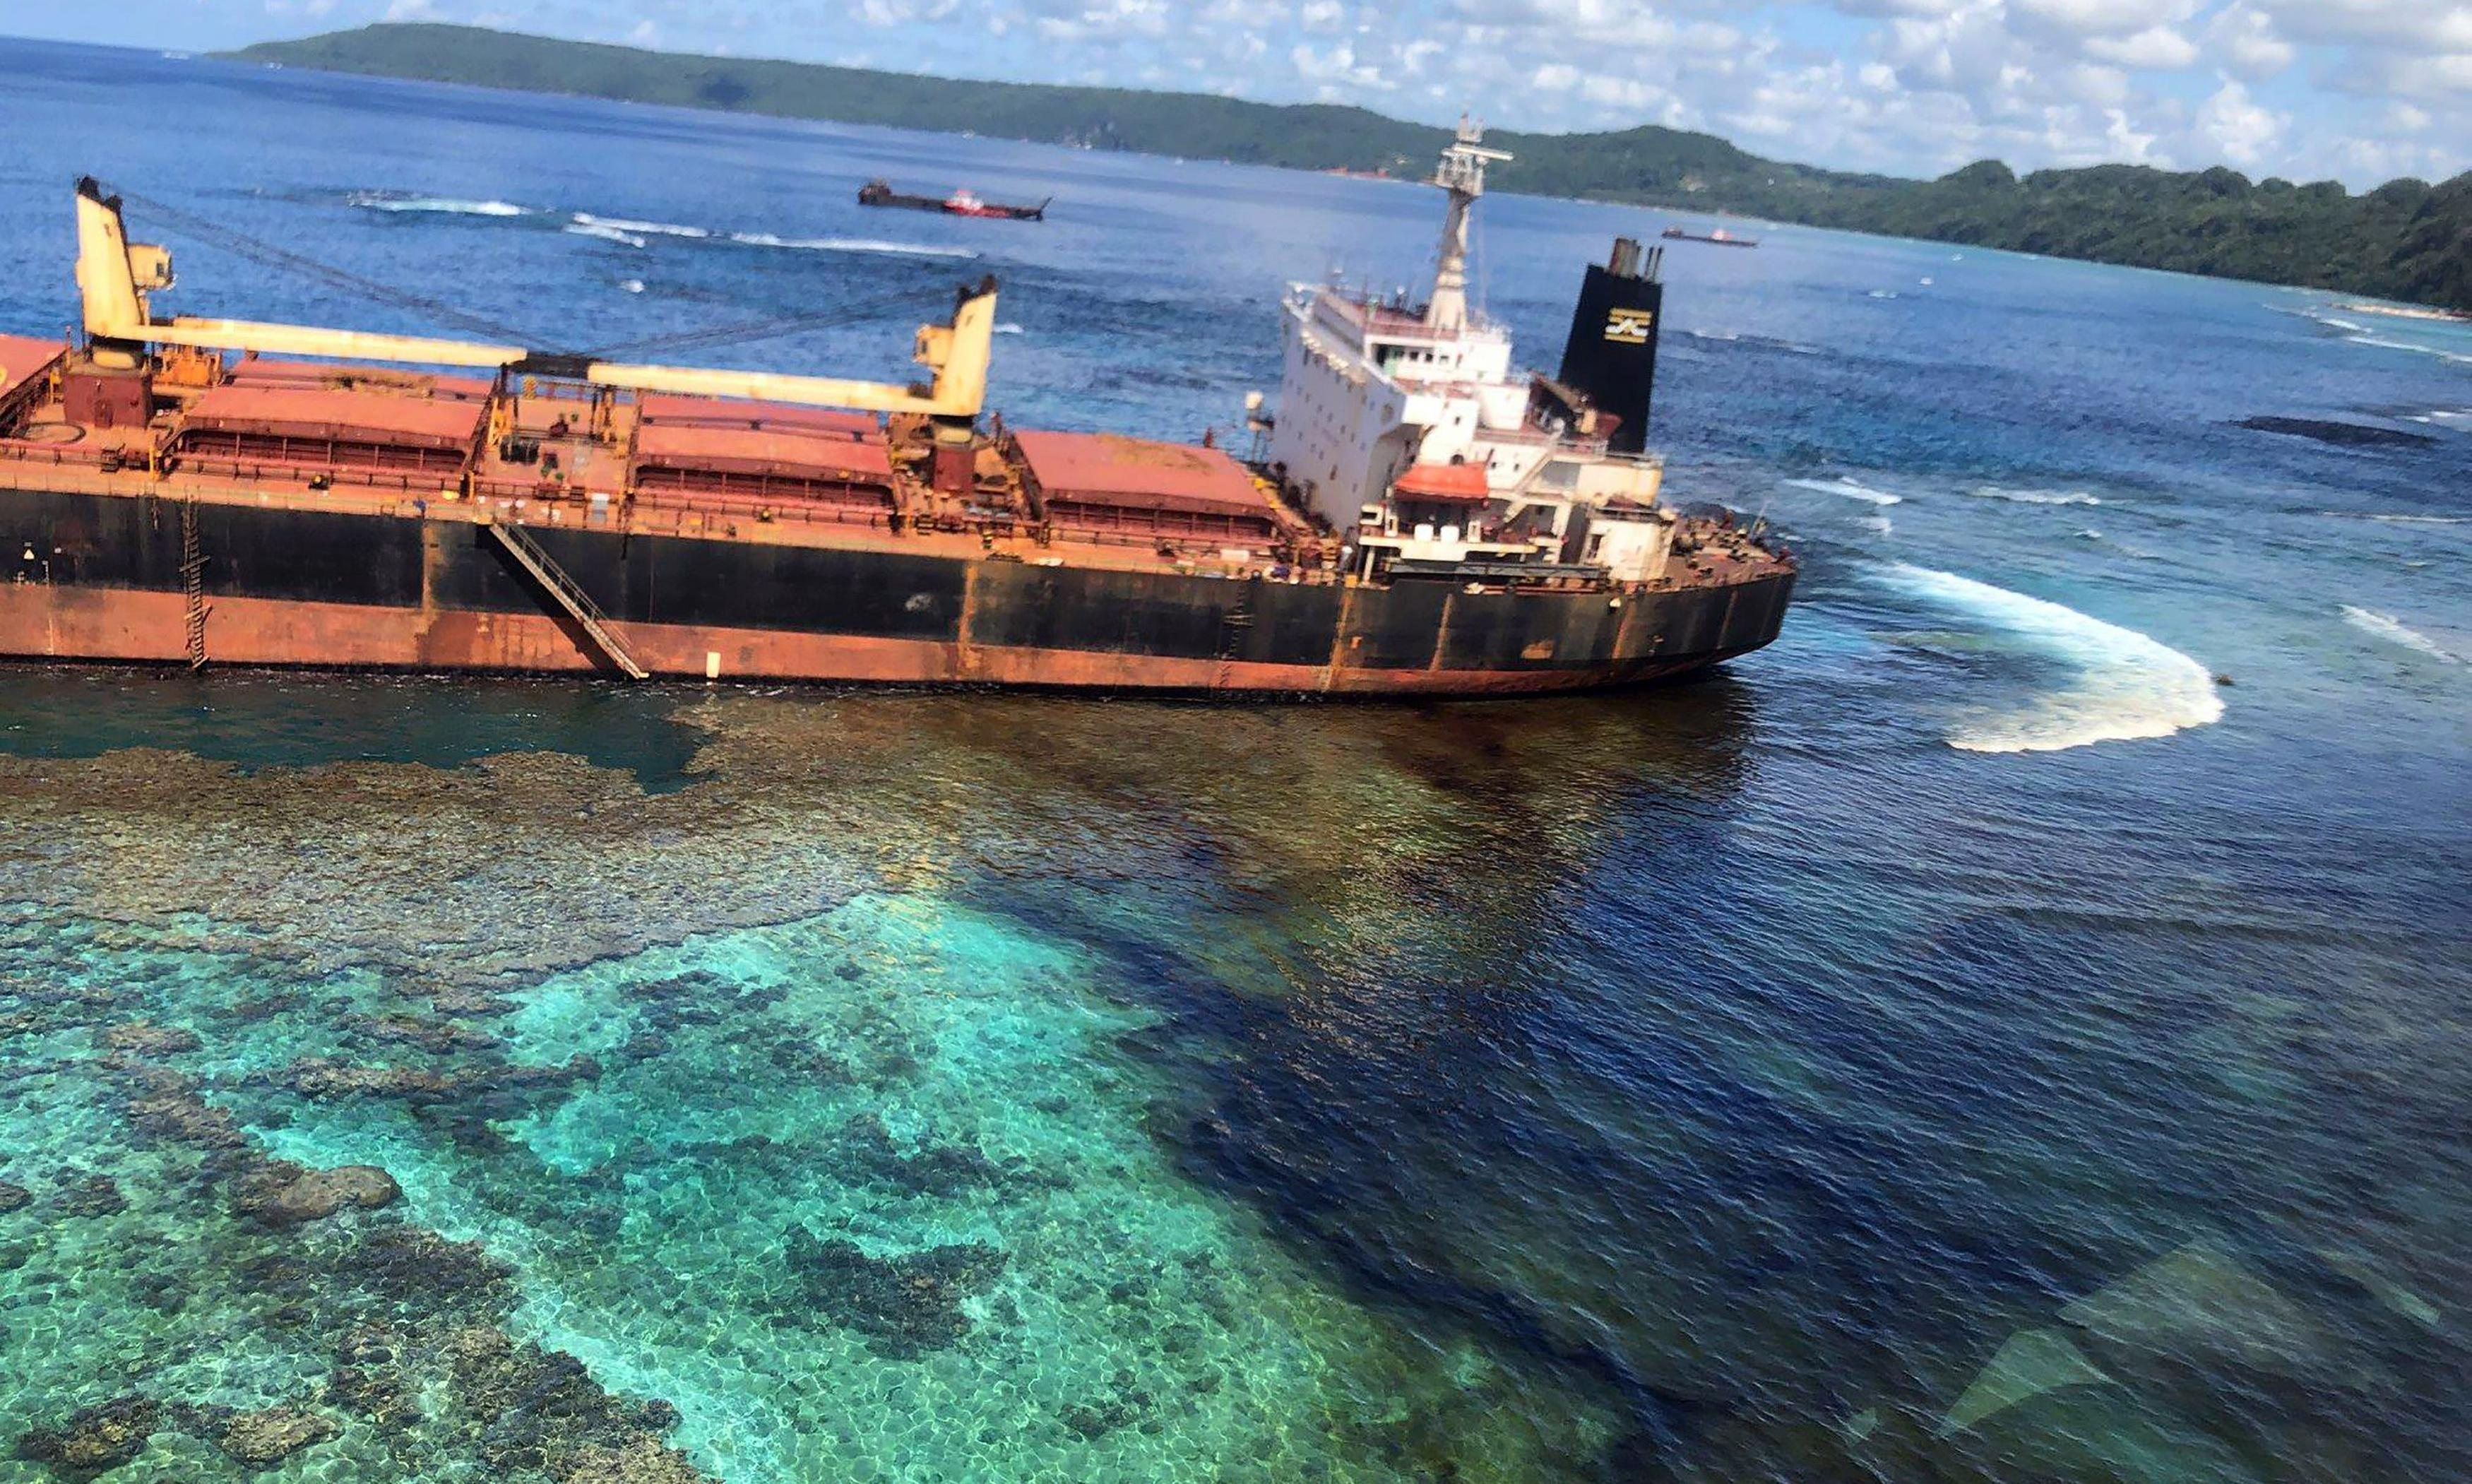 'We cannot swim, we cannot eat': Solomon Islands struggle with nation's worst oil spill